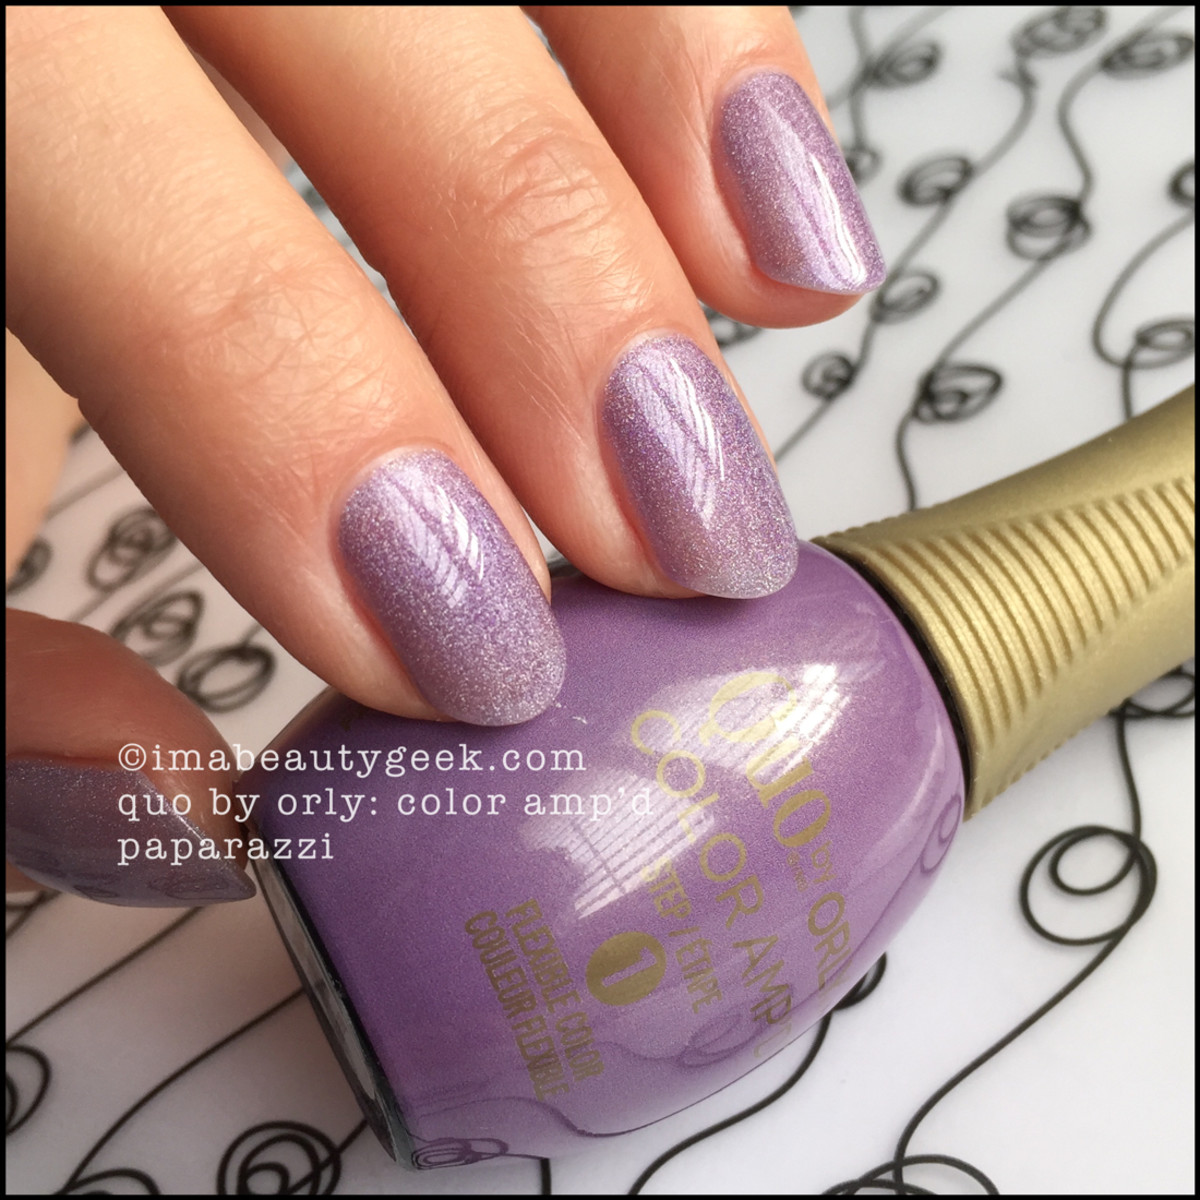 Quo Color Ampd Paparazzi_Quo by Orly Epix Swatches